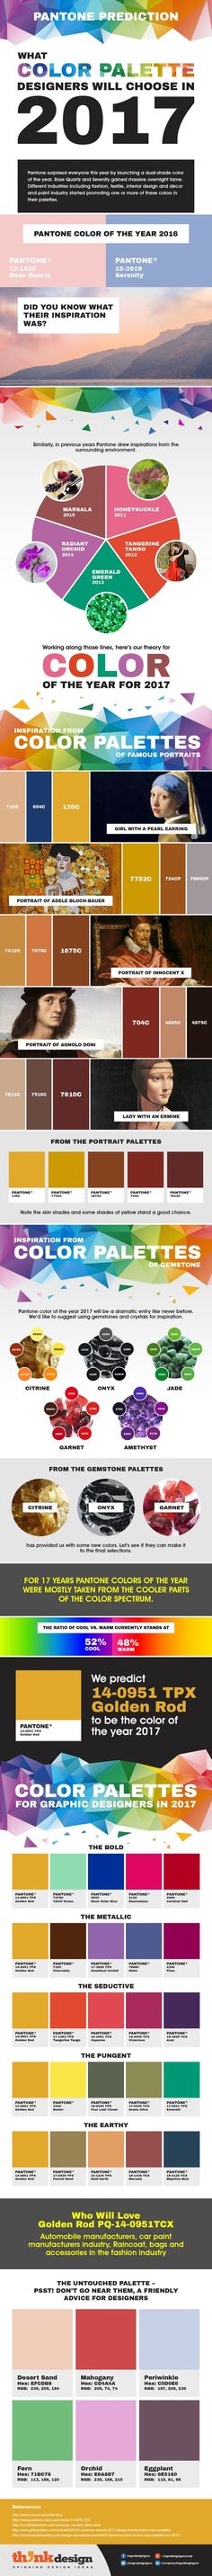 Infographic: PANTONE Prediction Of Color Palettes For Designers In 2017 - DesignTAXI.com: